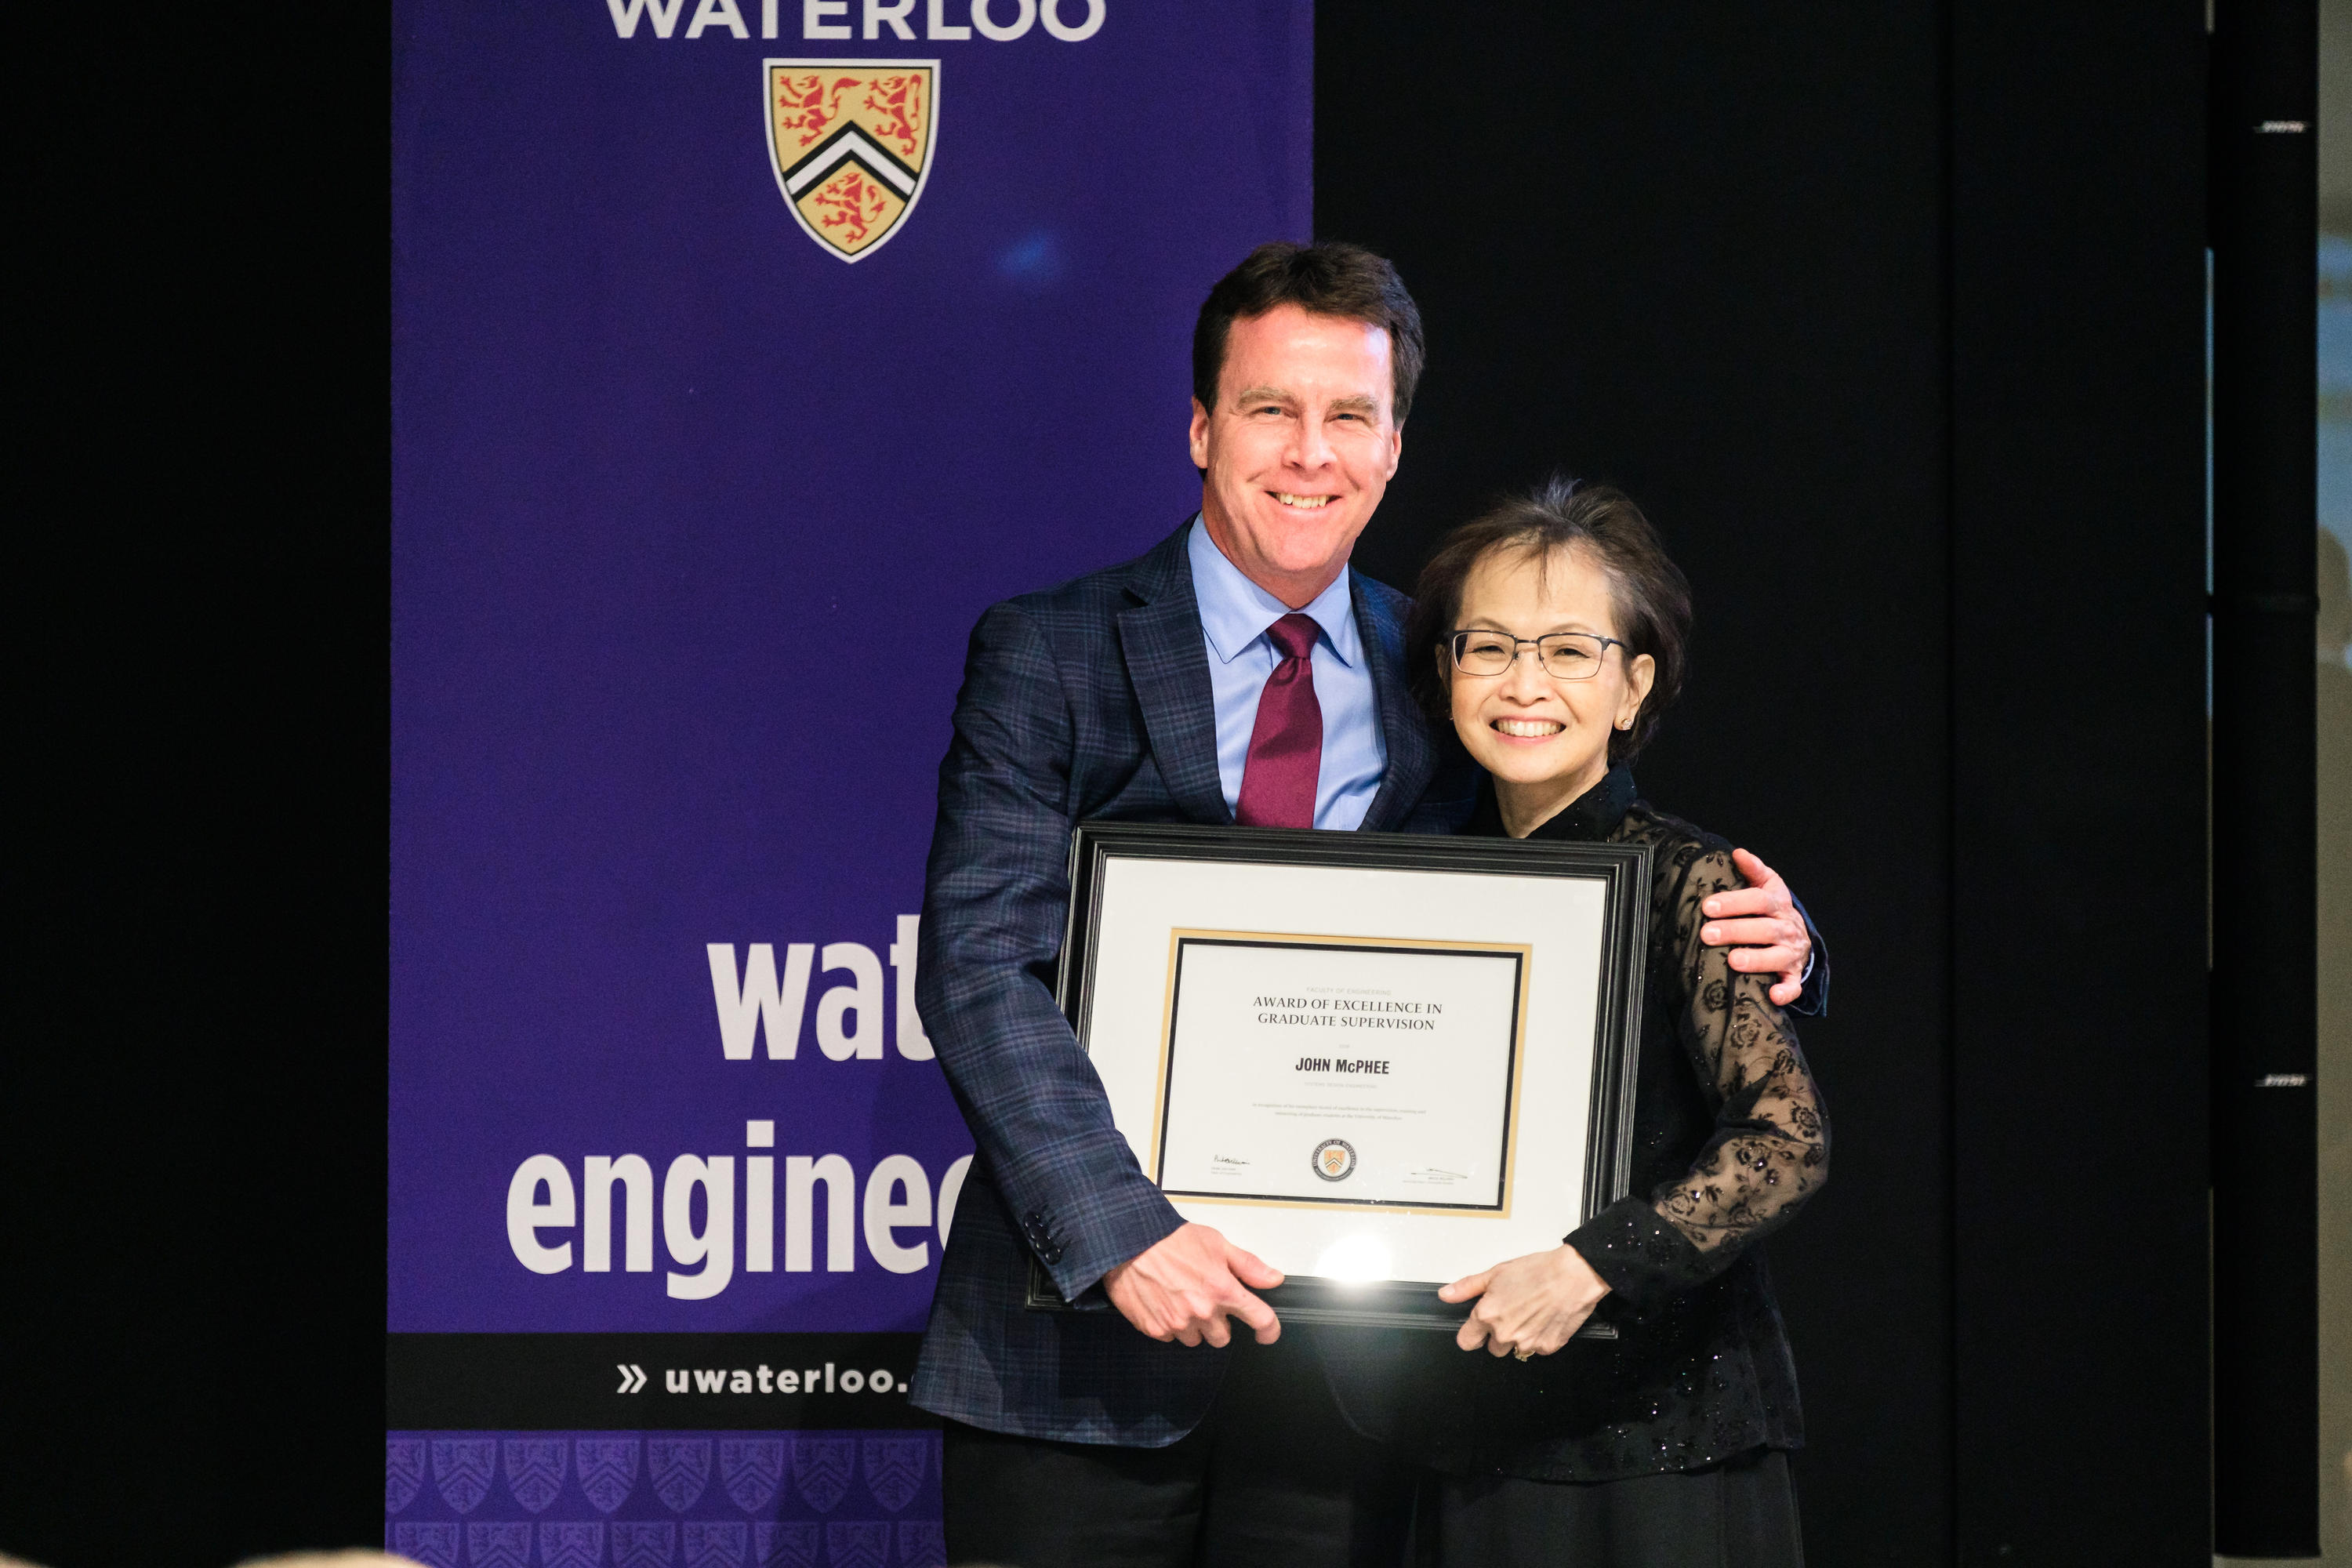 John McPhee recieves Waterloo Engineering awards